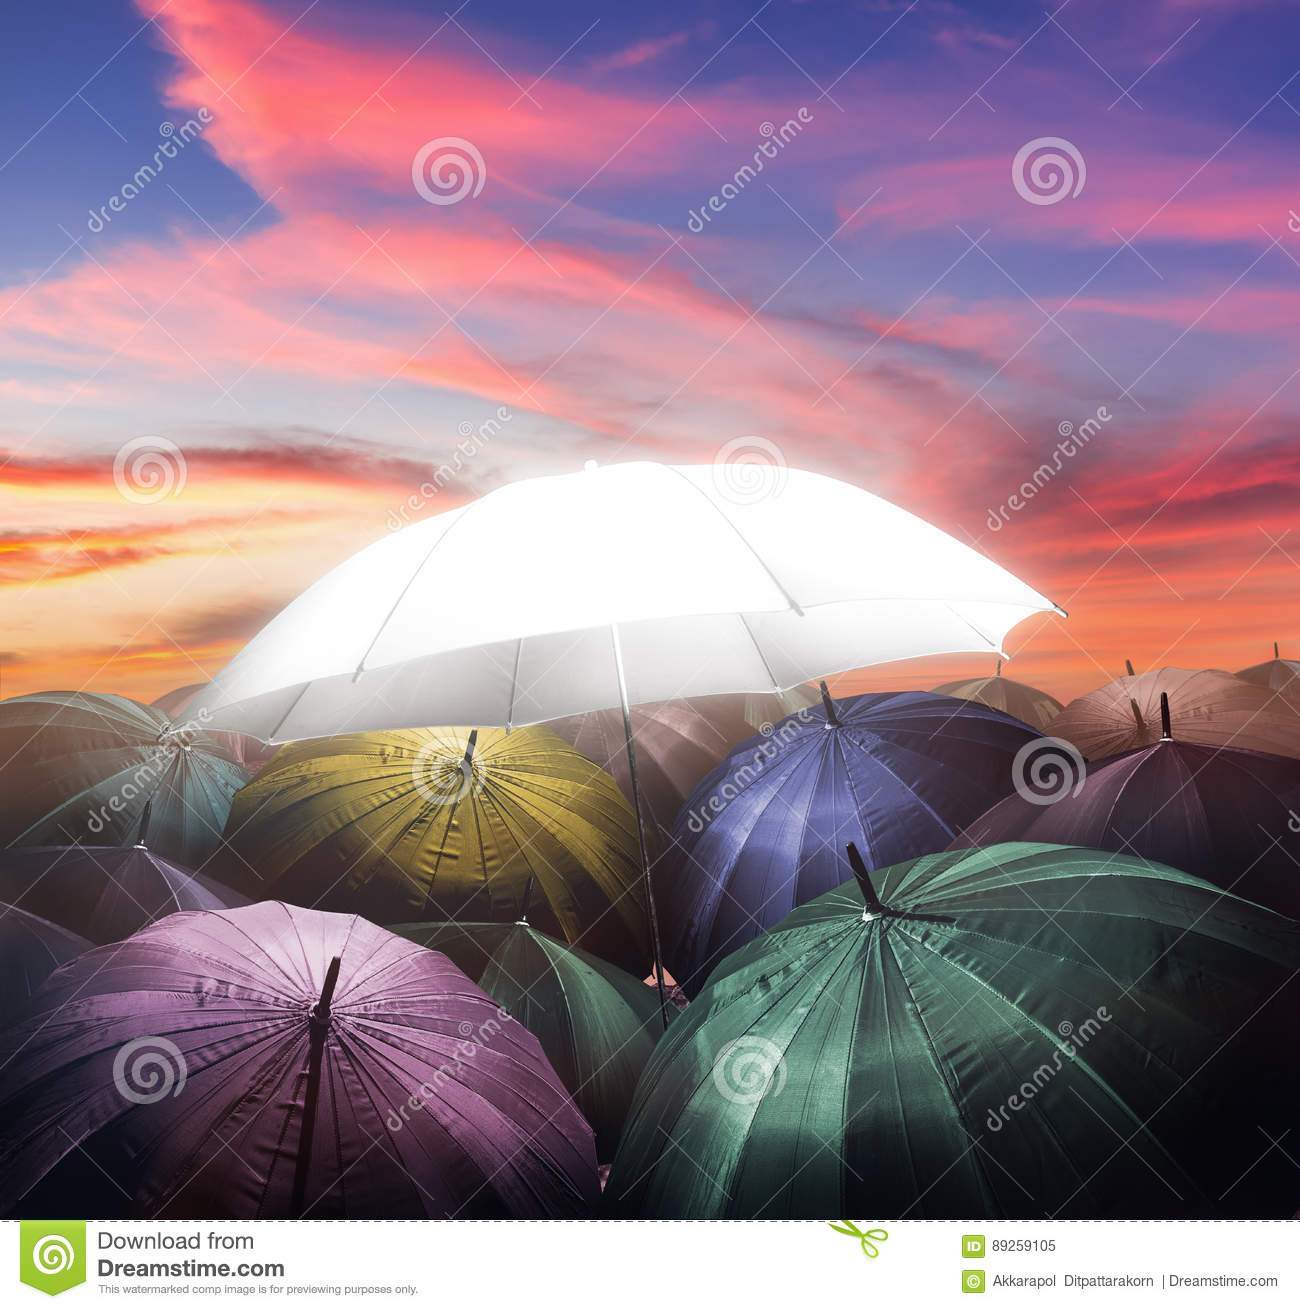 umbrella lights glowing standing out from crowd of dark umbrella